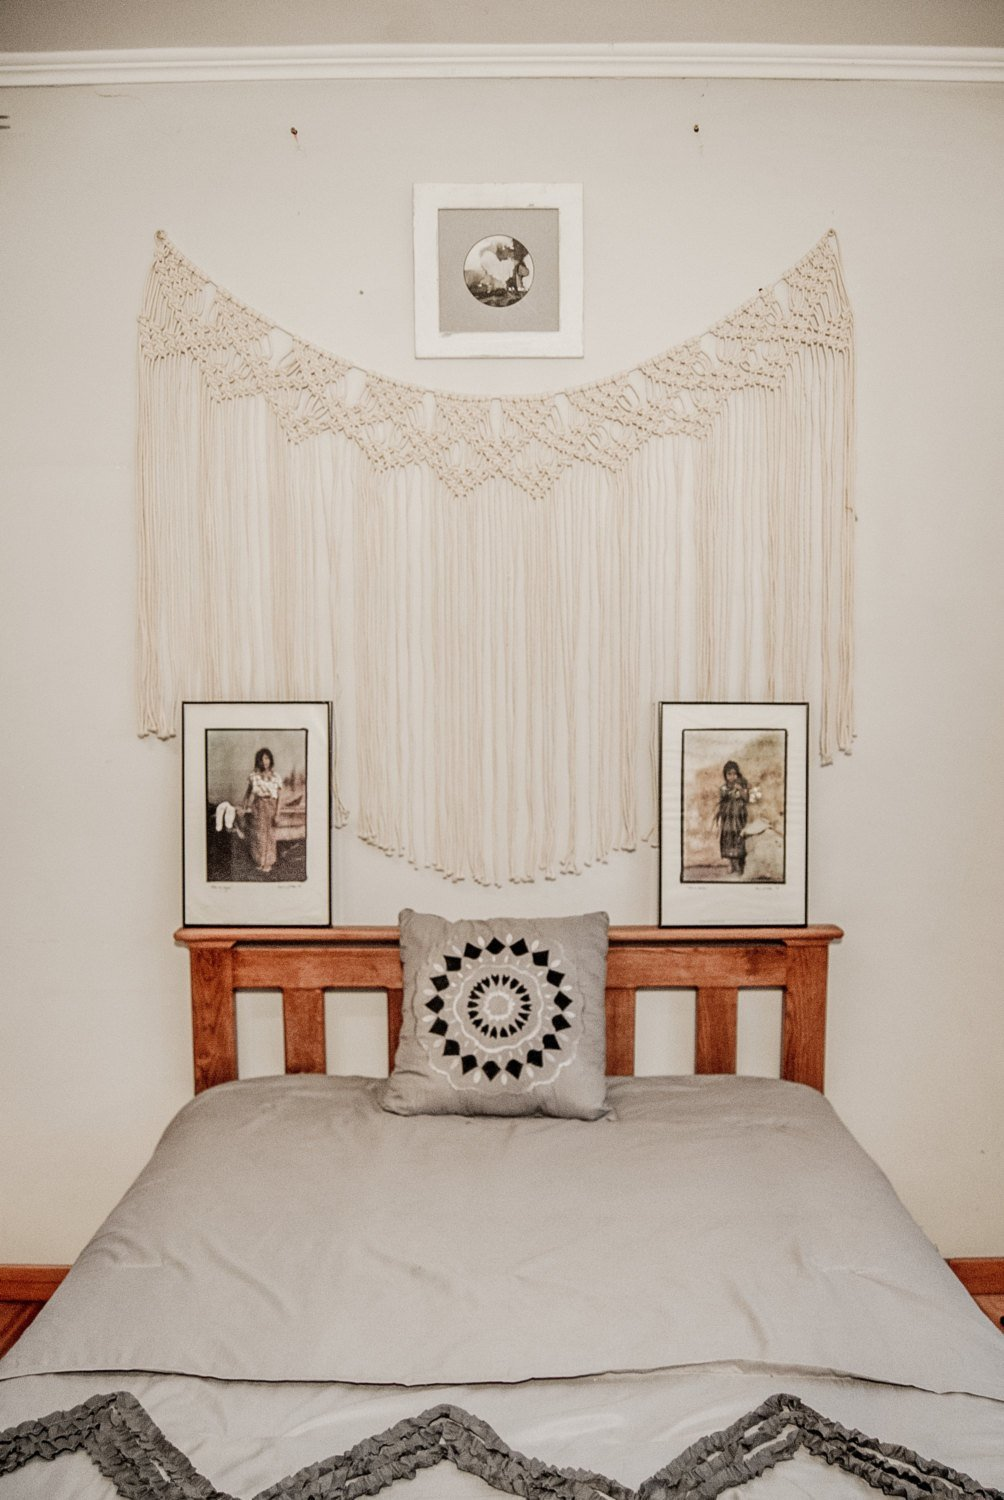 Best Macrame Curtain Macrame Wall Hanging Macrame Wall Art With Pictures